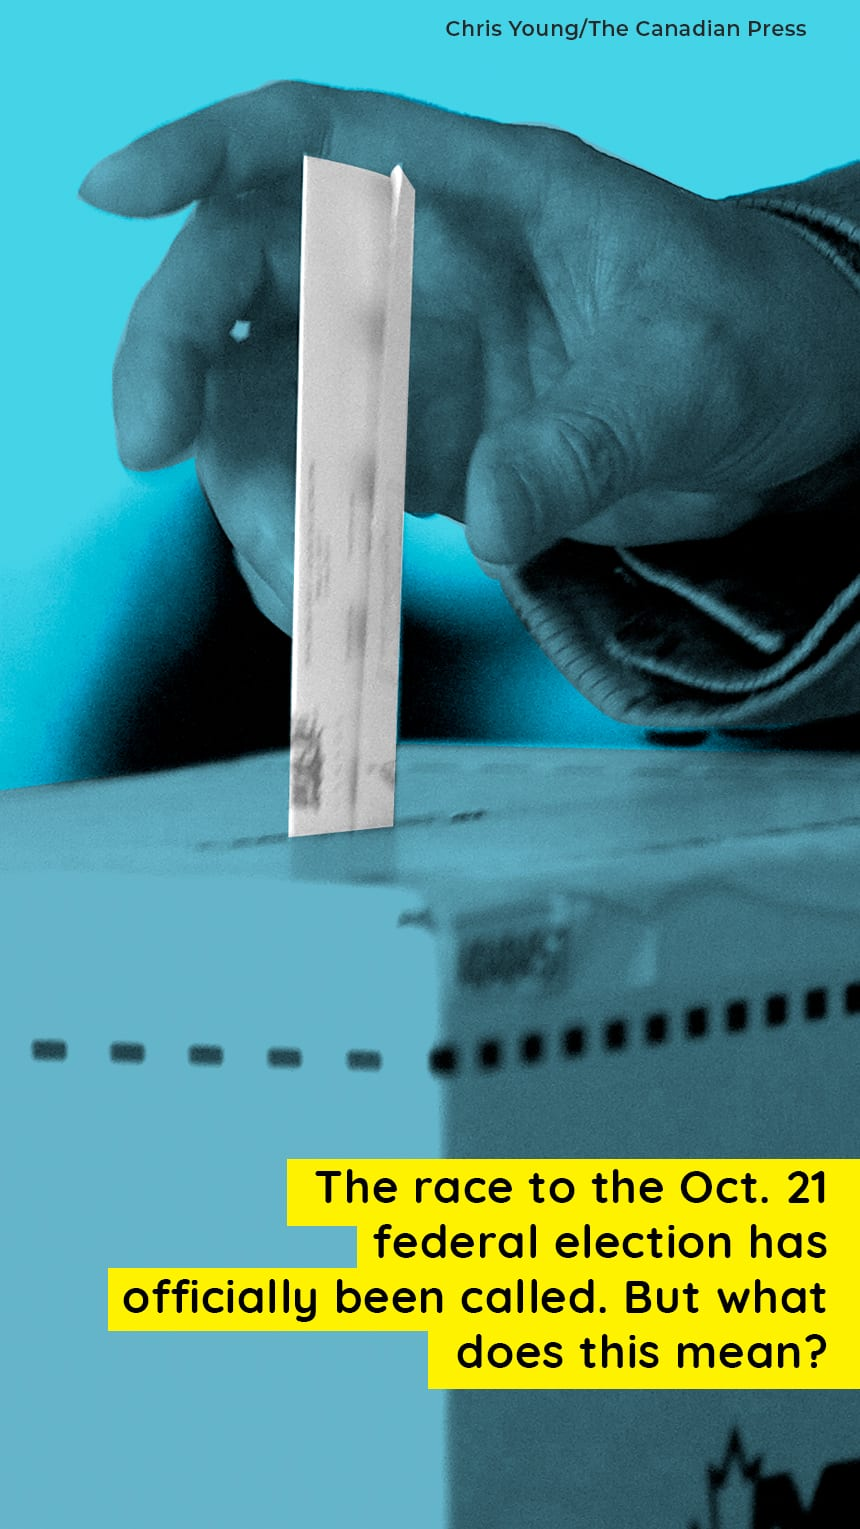 An image of a hand dropping election card into ballot box with text that says, The race to the Oct. 21 federal election has officially been called. But what does this mean?